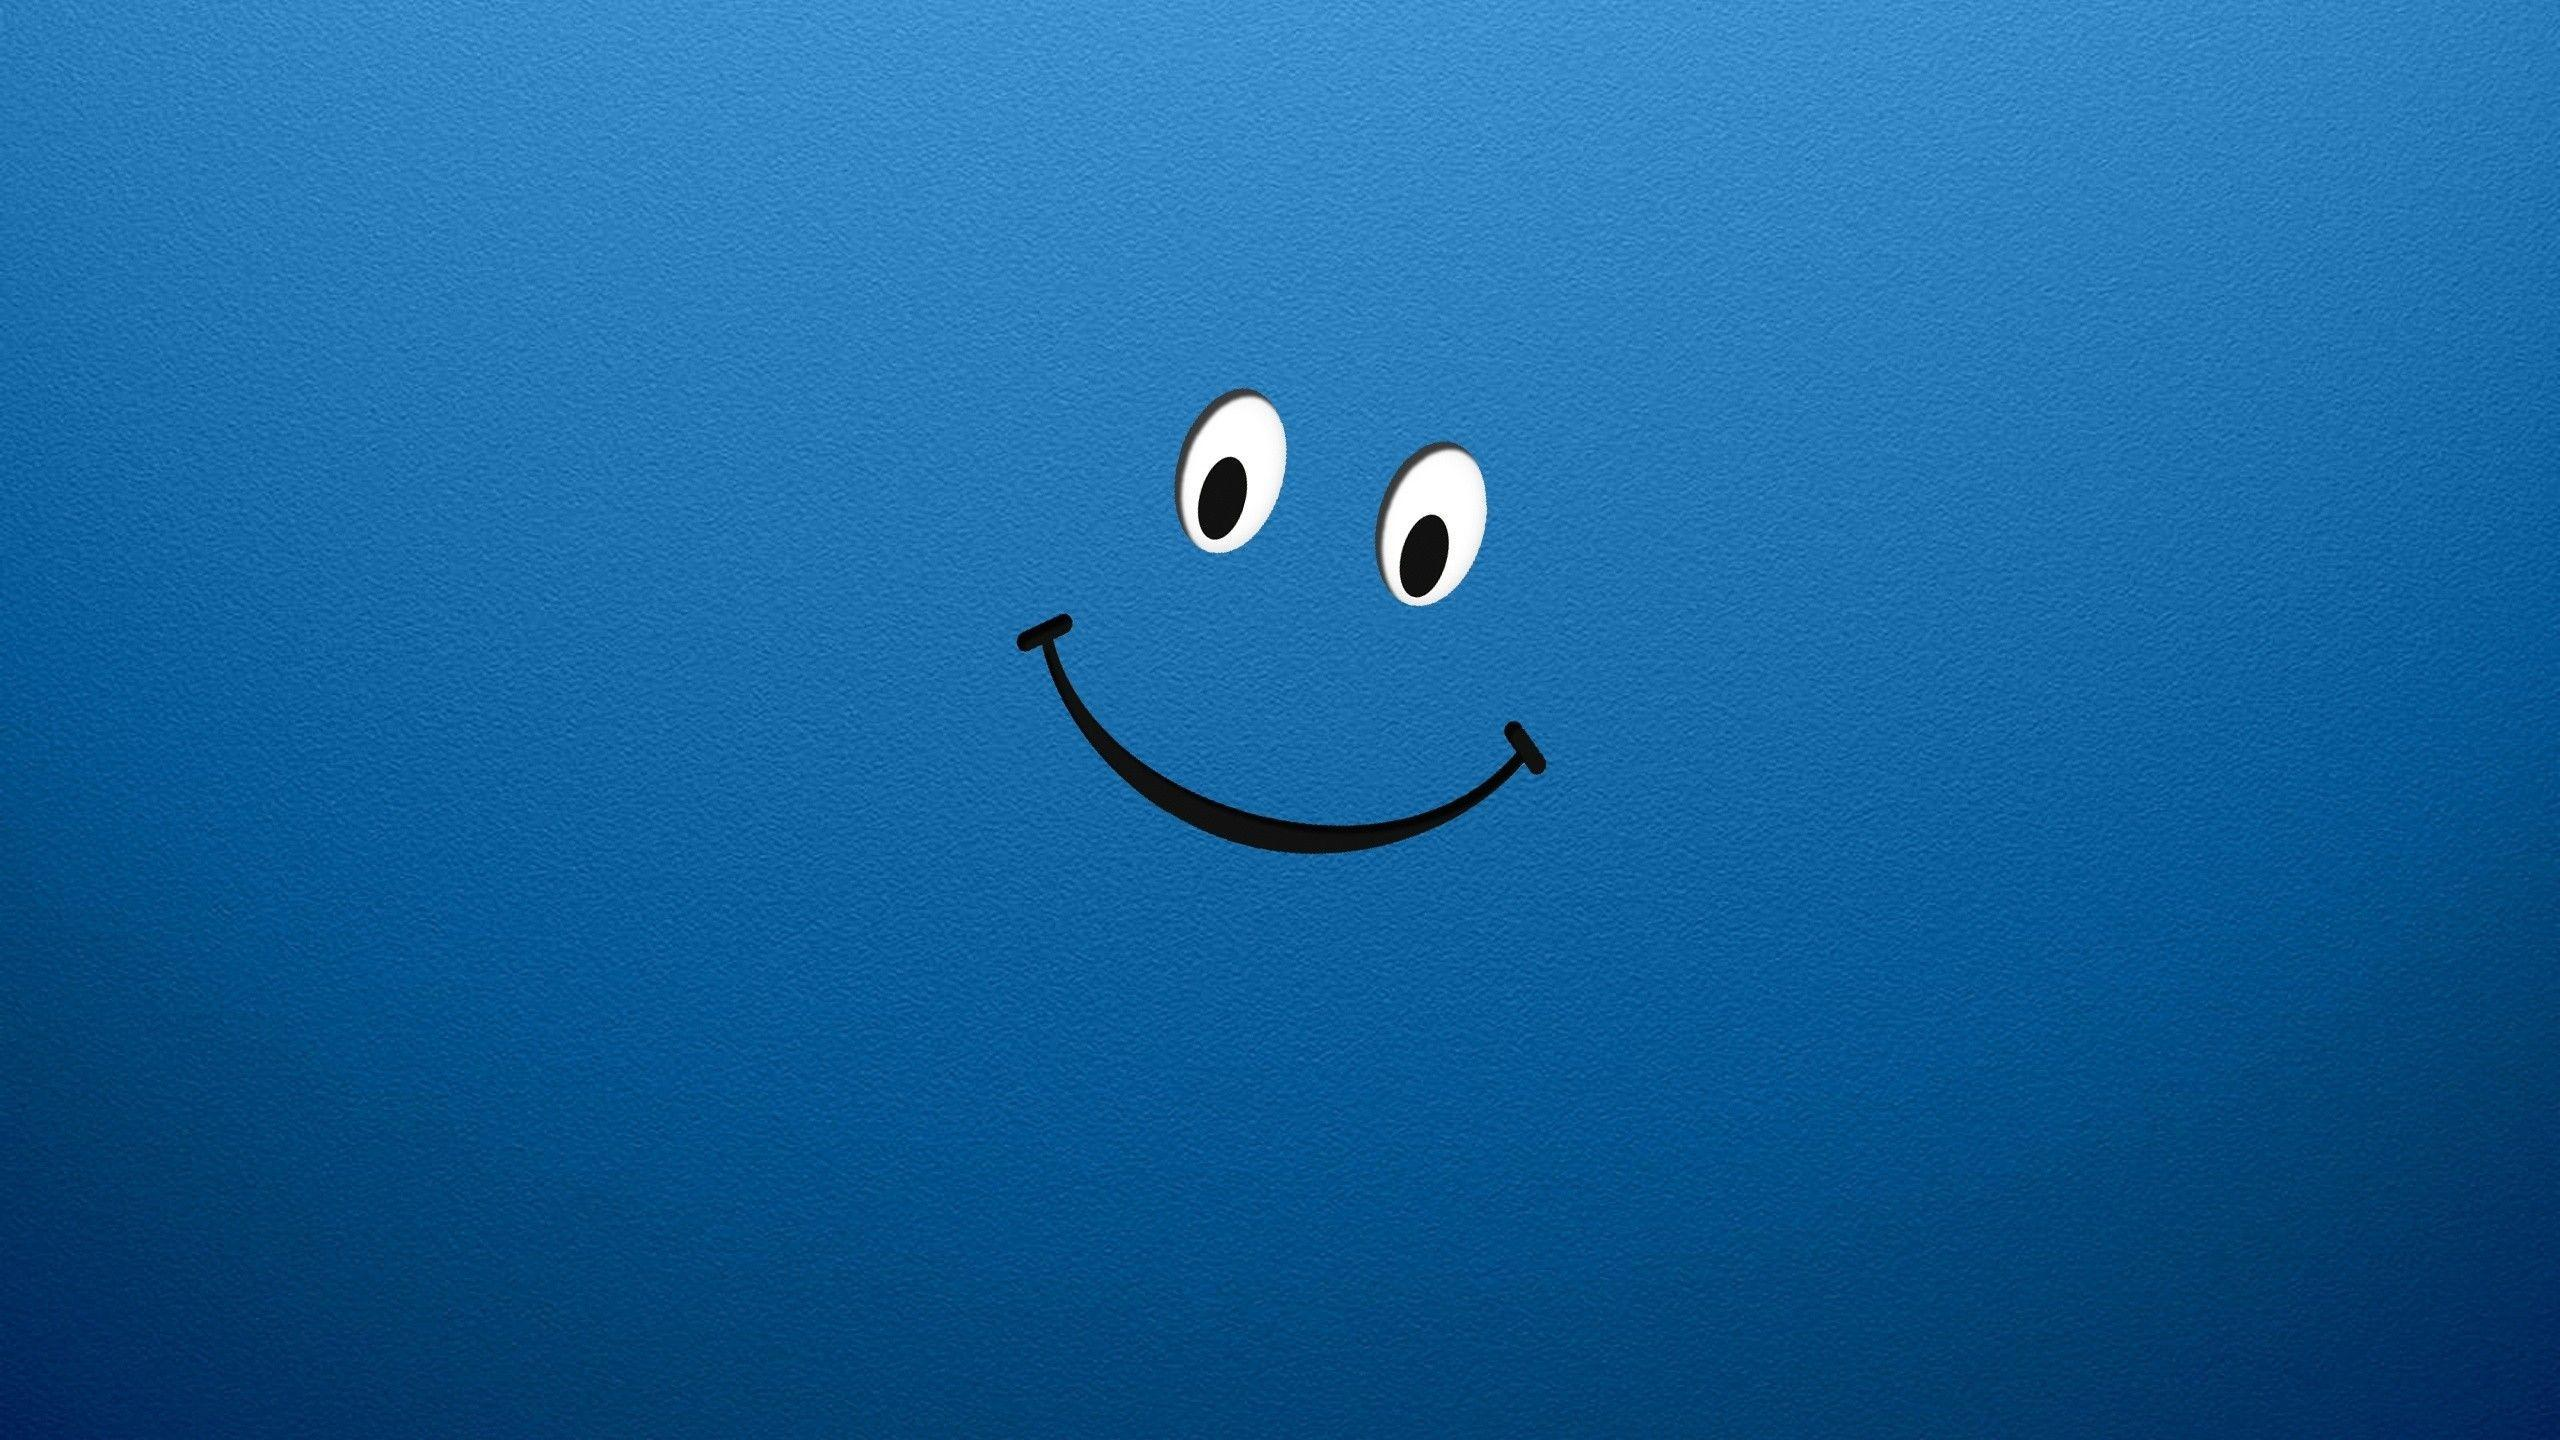 smiling face wallpapers wallpaper cave